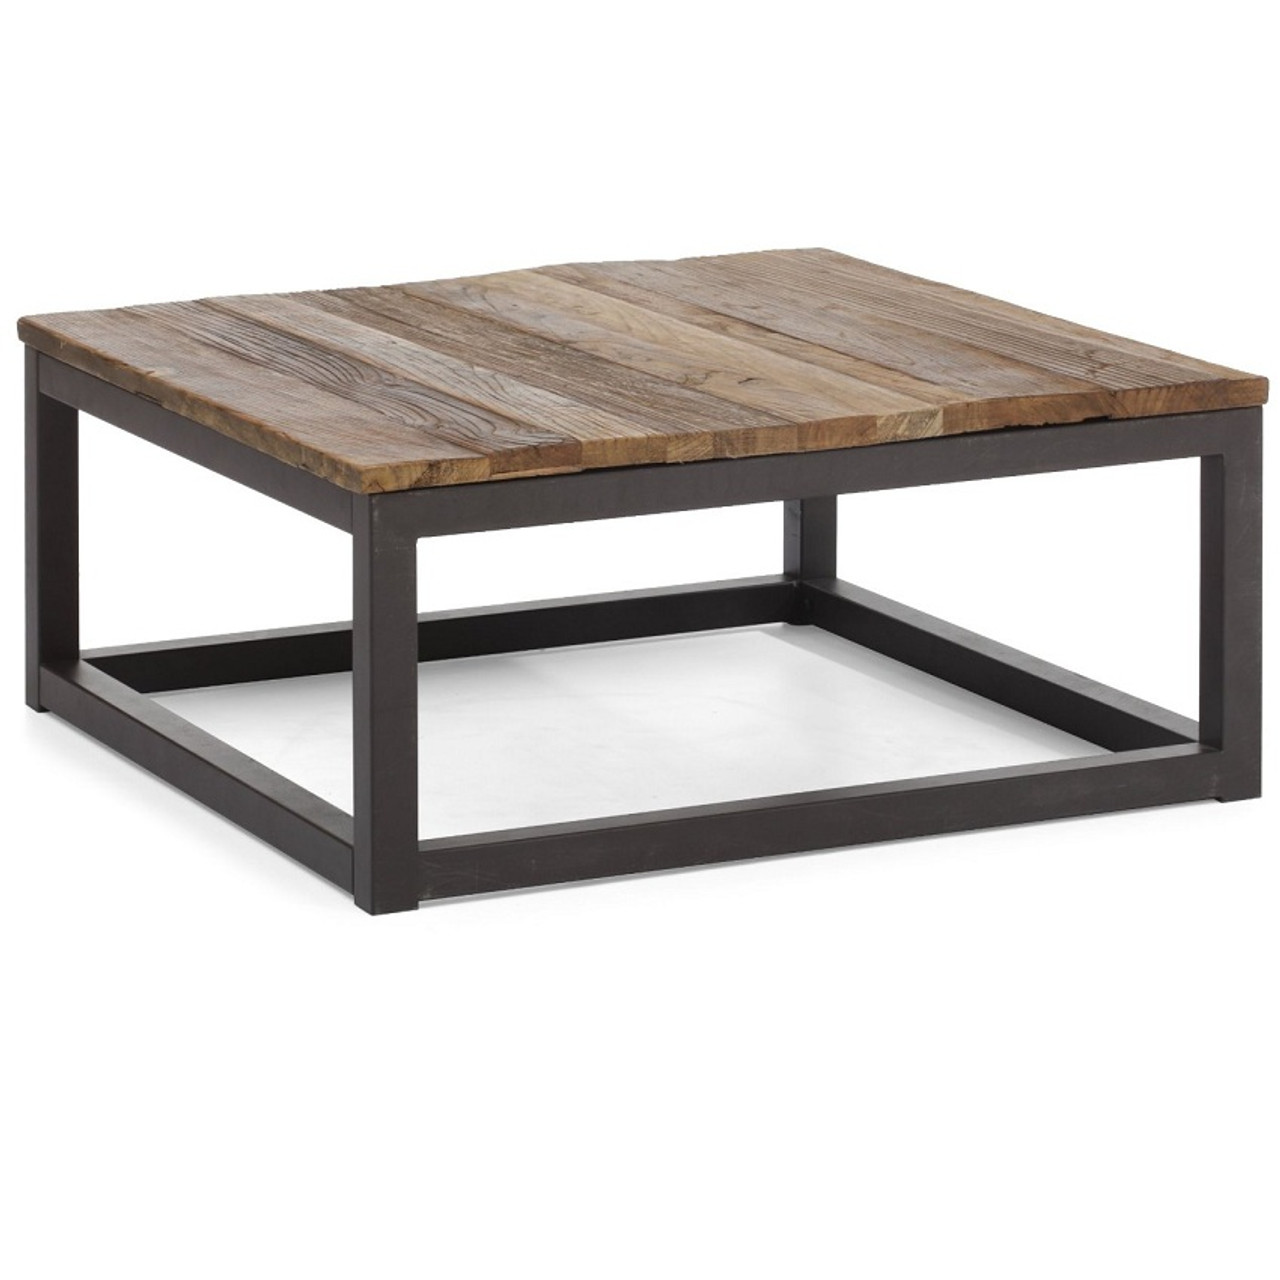 Civic wood and metal square coffee table zin home Wood square coffee tables